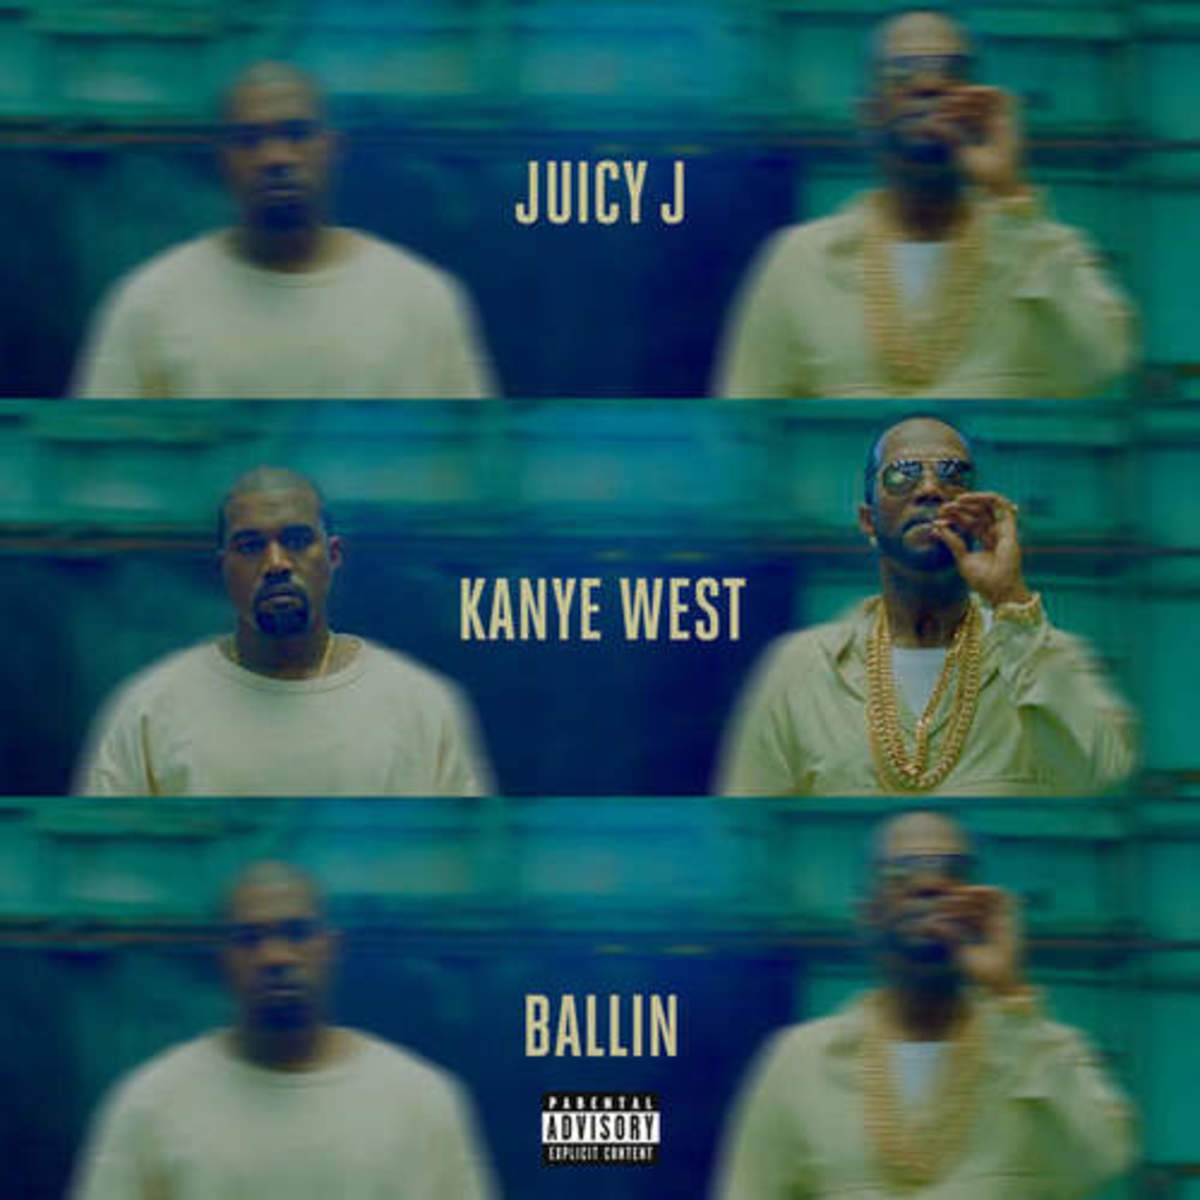 juicy-j-ballin1.jpeg